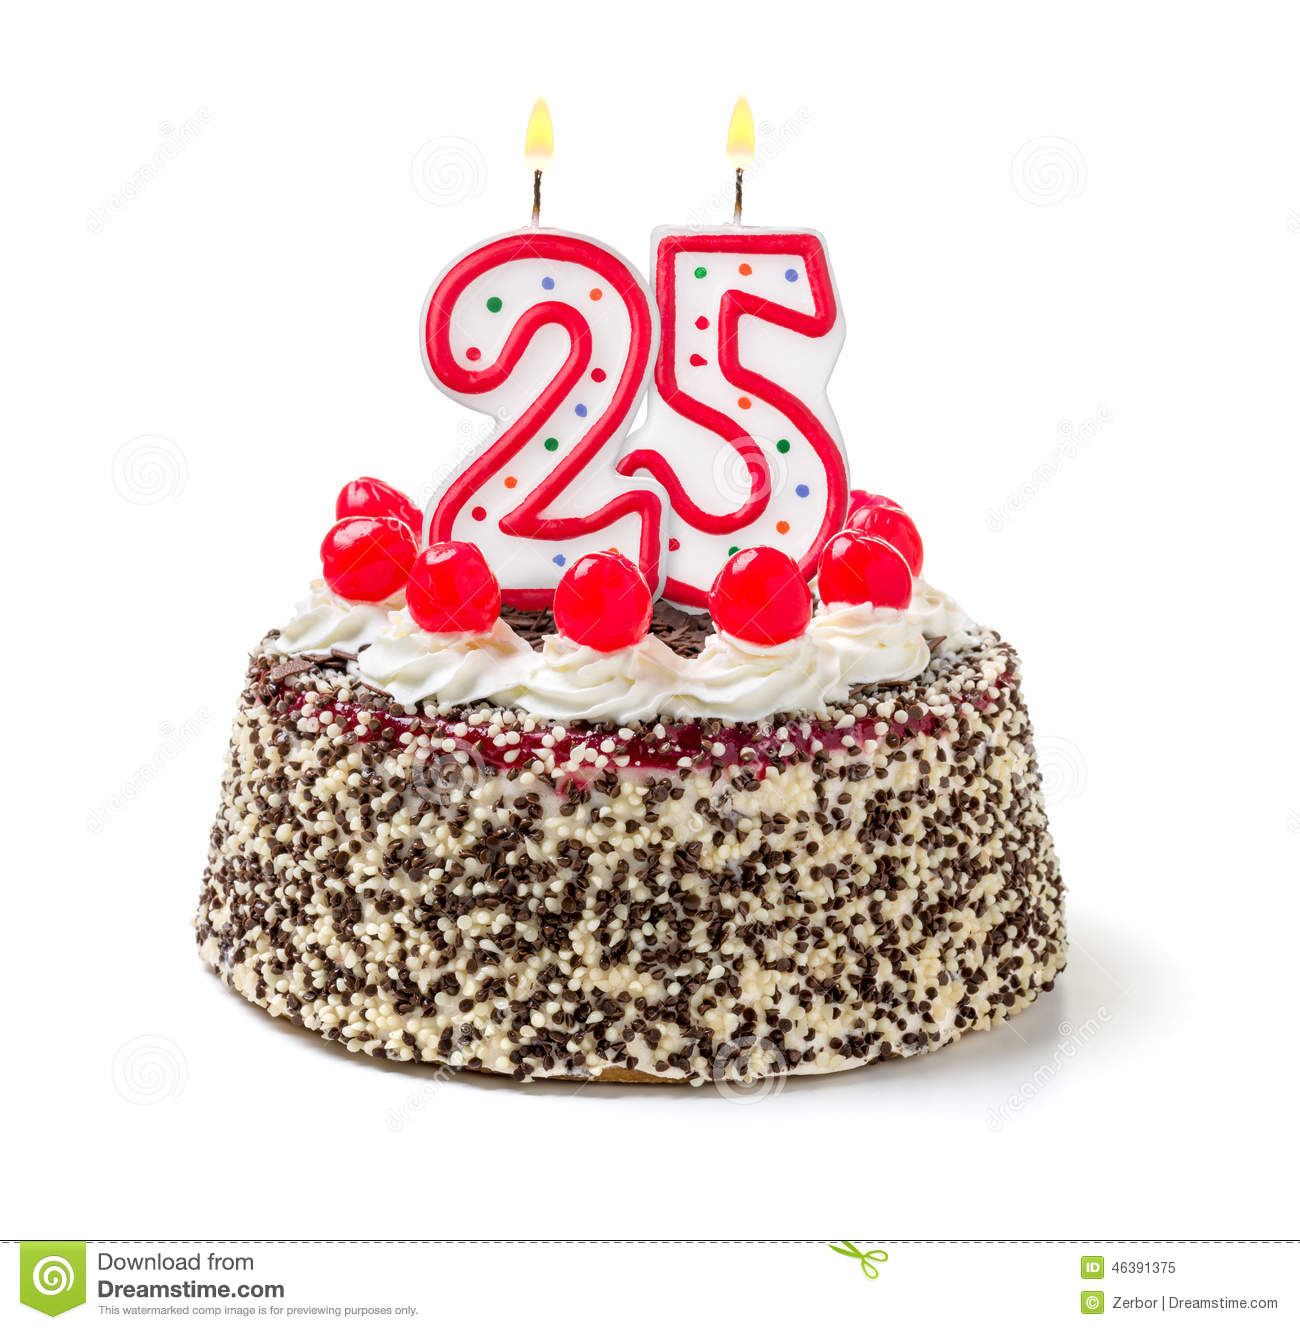 Birthday Cake Candle Images Free Download : Birthday Cake With Candle Number 25 Stock Photo - Image ...